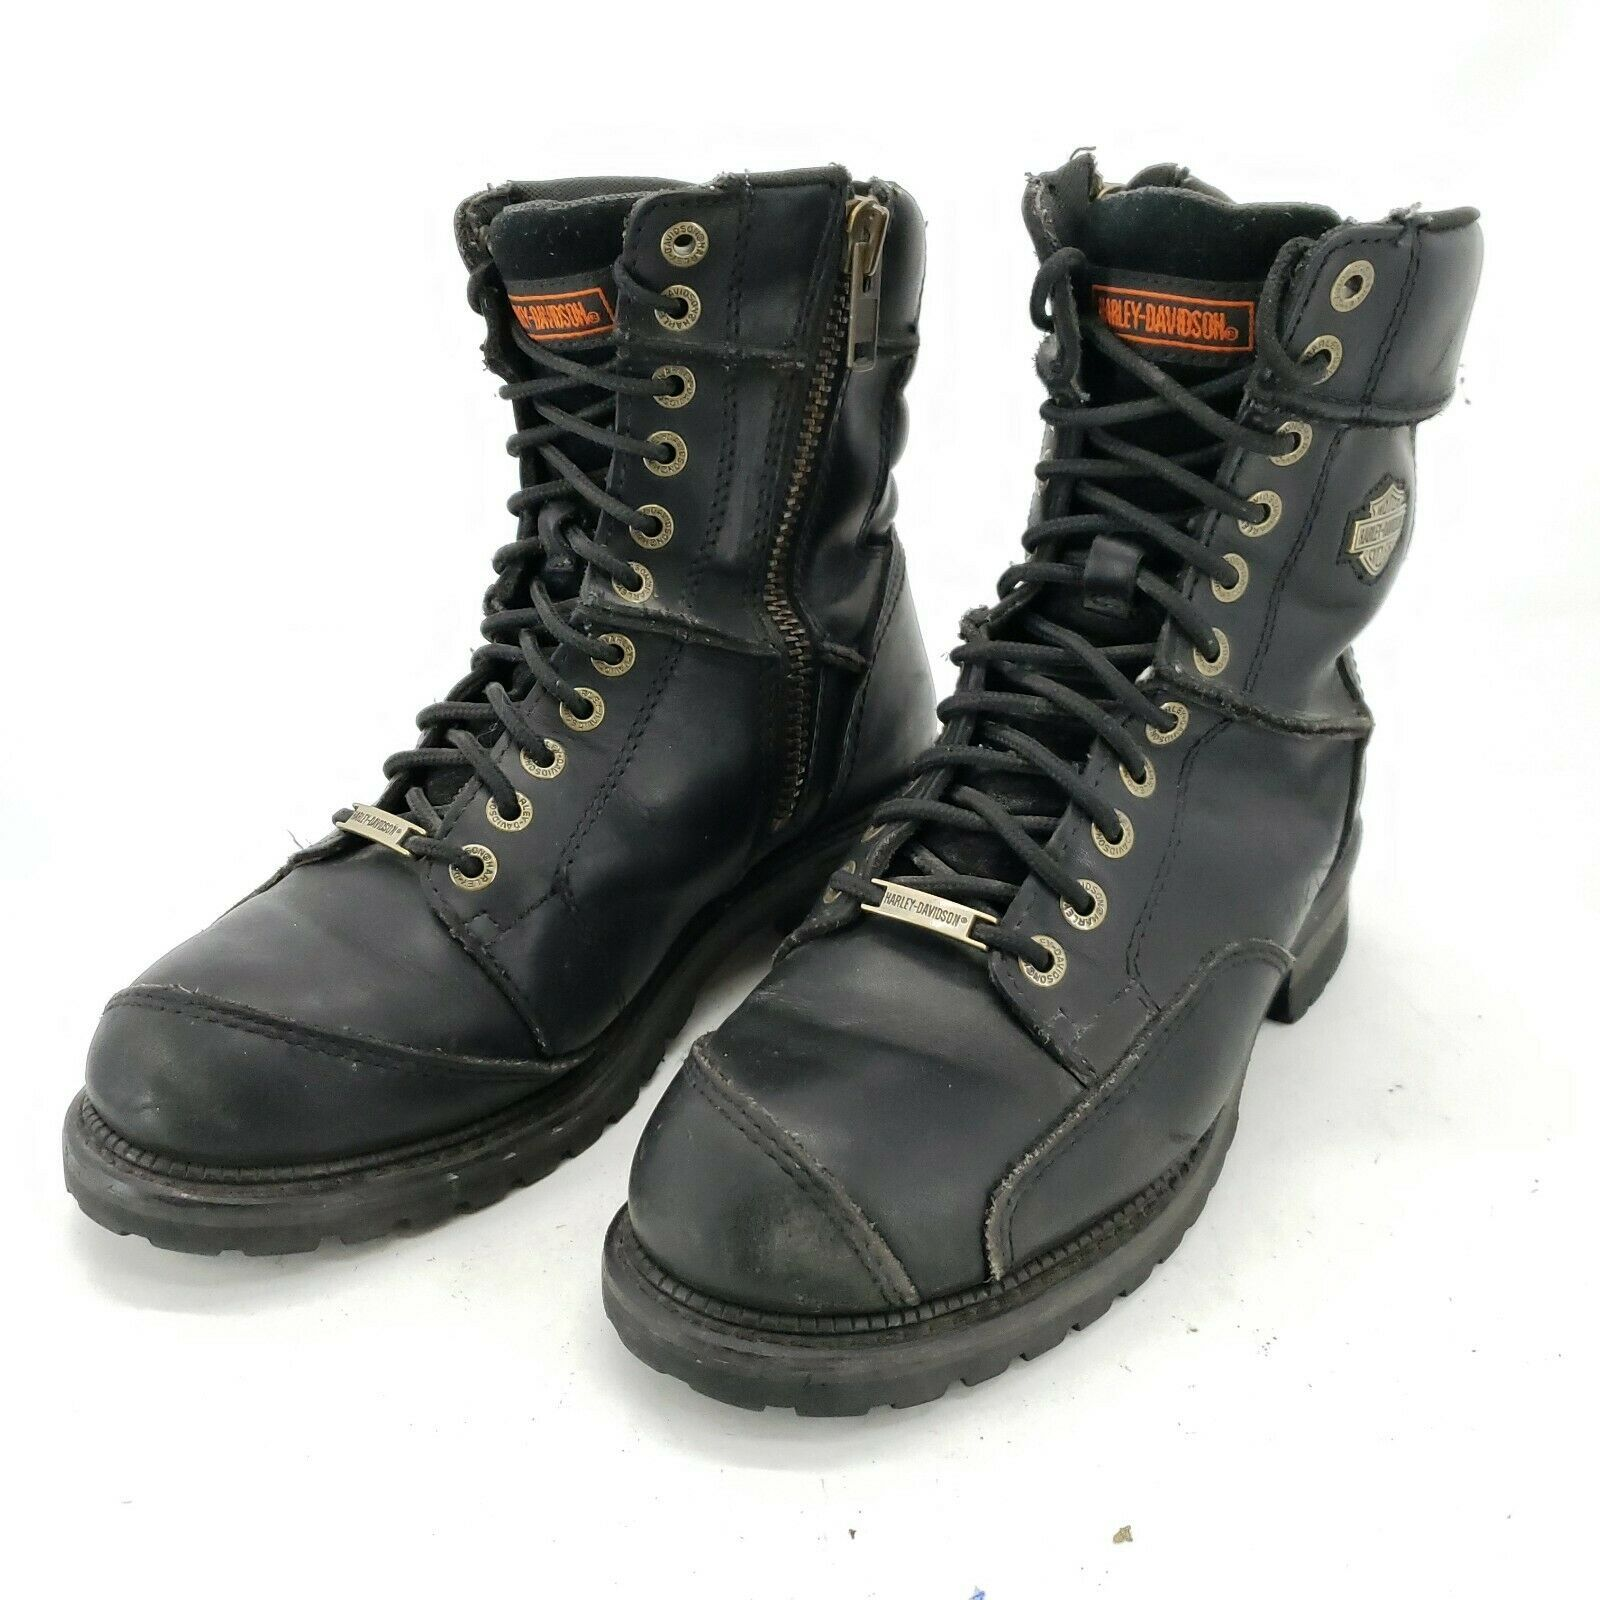 Primary image for Harley Davidson Casper 94043 Black Motorcycle Side Zip Boots Men's Size 9.5""